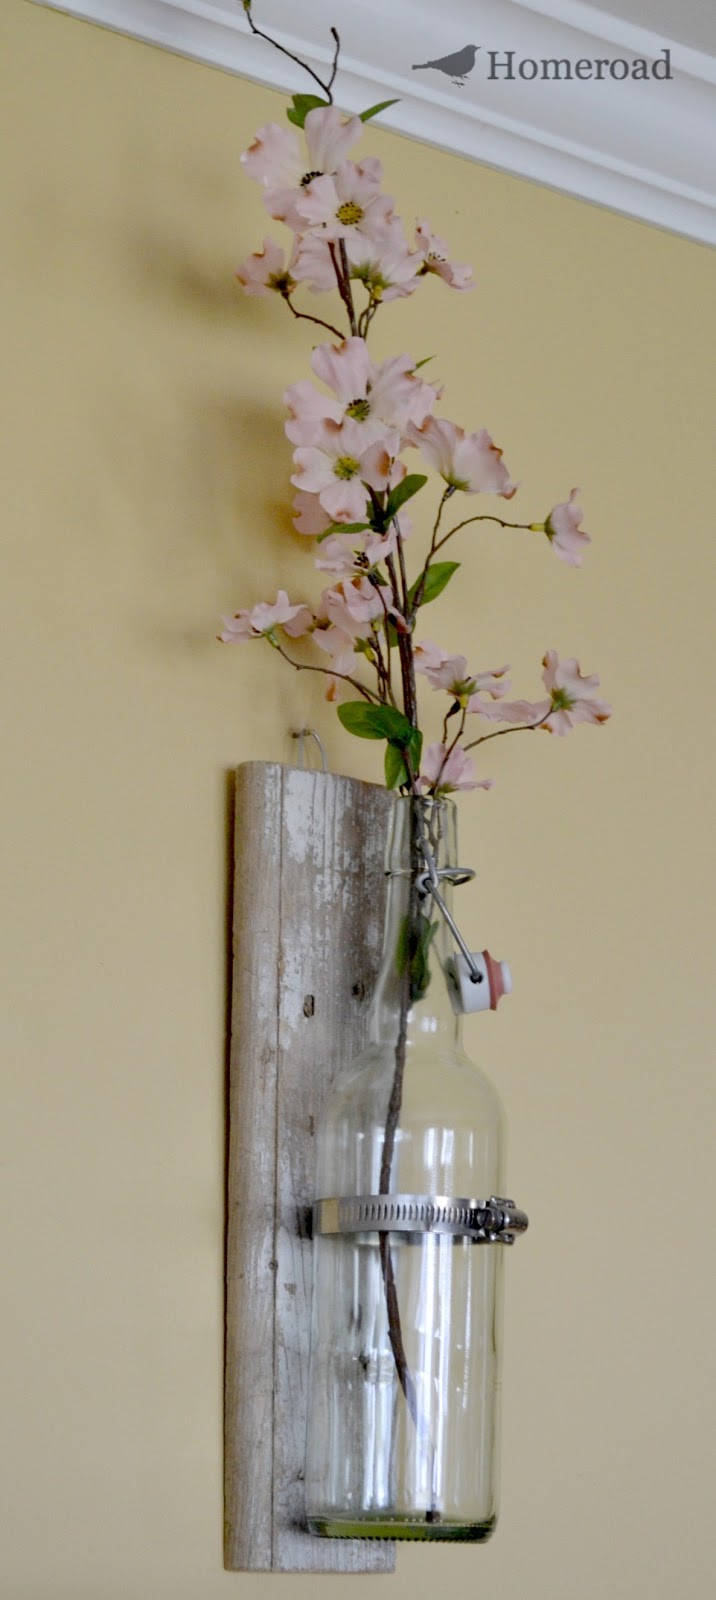 Rustic wall vase homeroad - Things to put on a wall ...